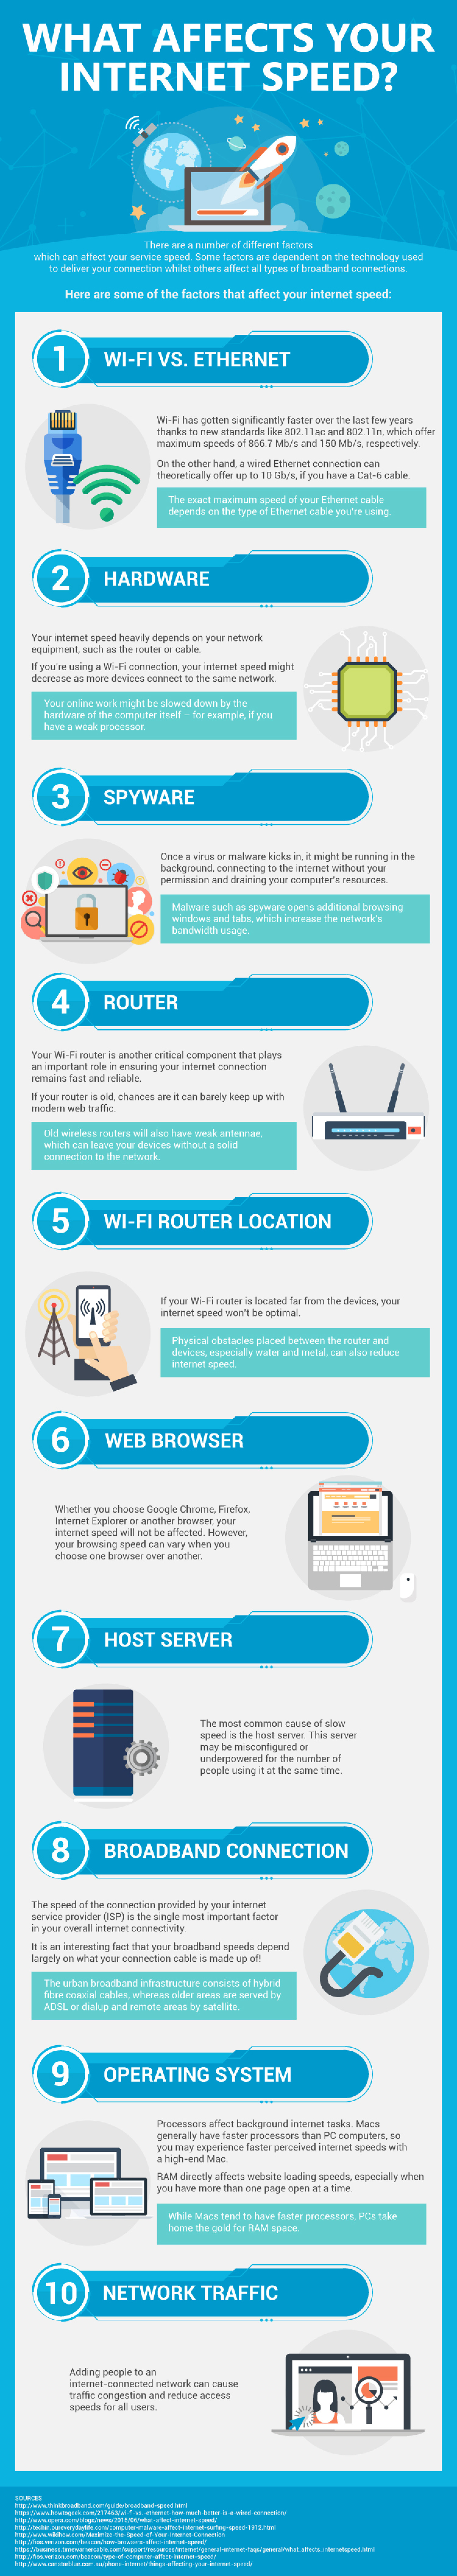 Internet Speed Factors Infographic Infographic